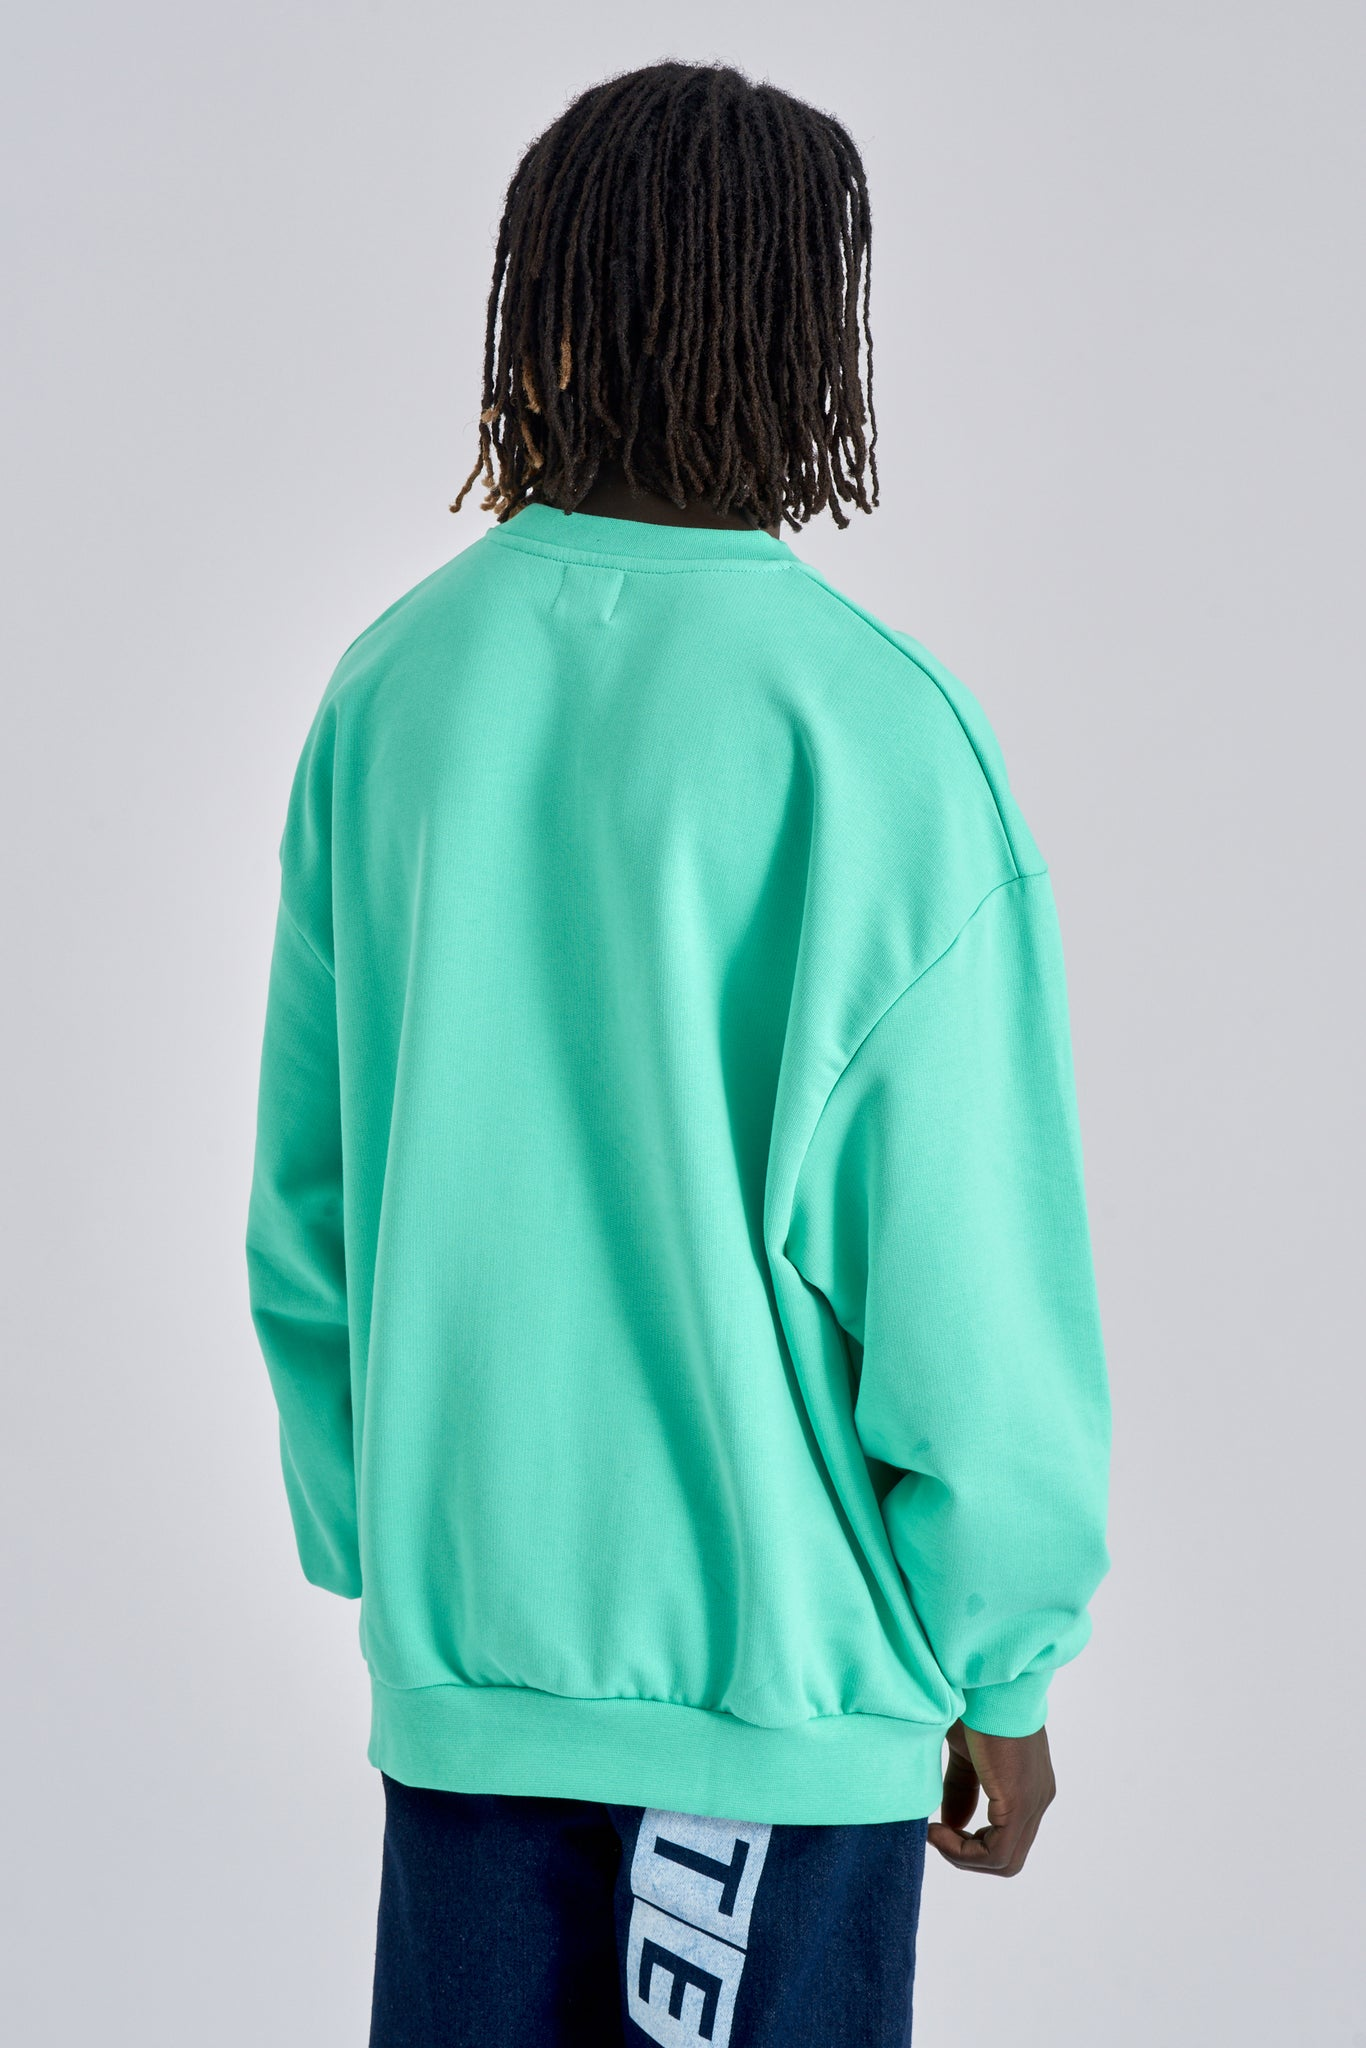 Caleb Mint Green Sweater - Arte Antwerp